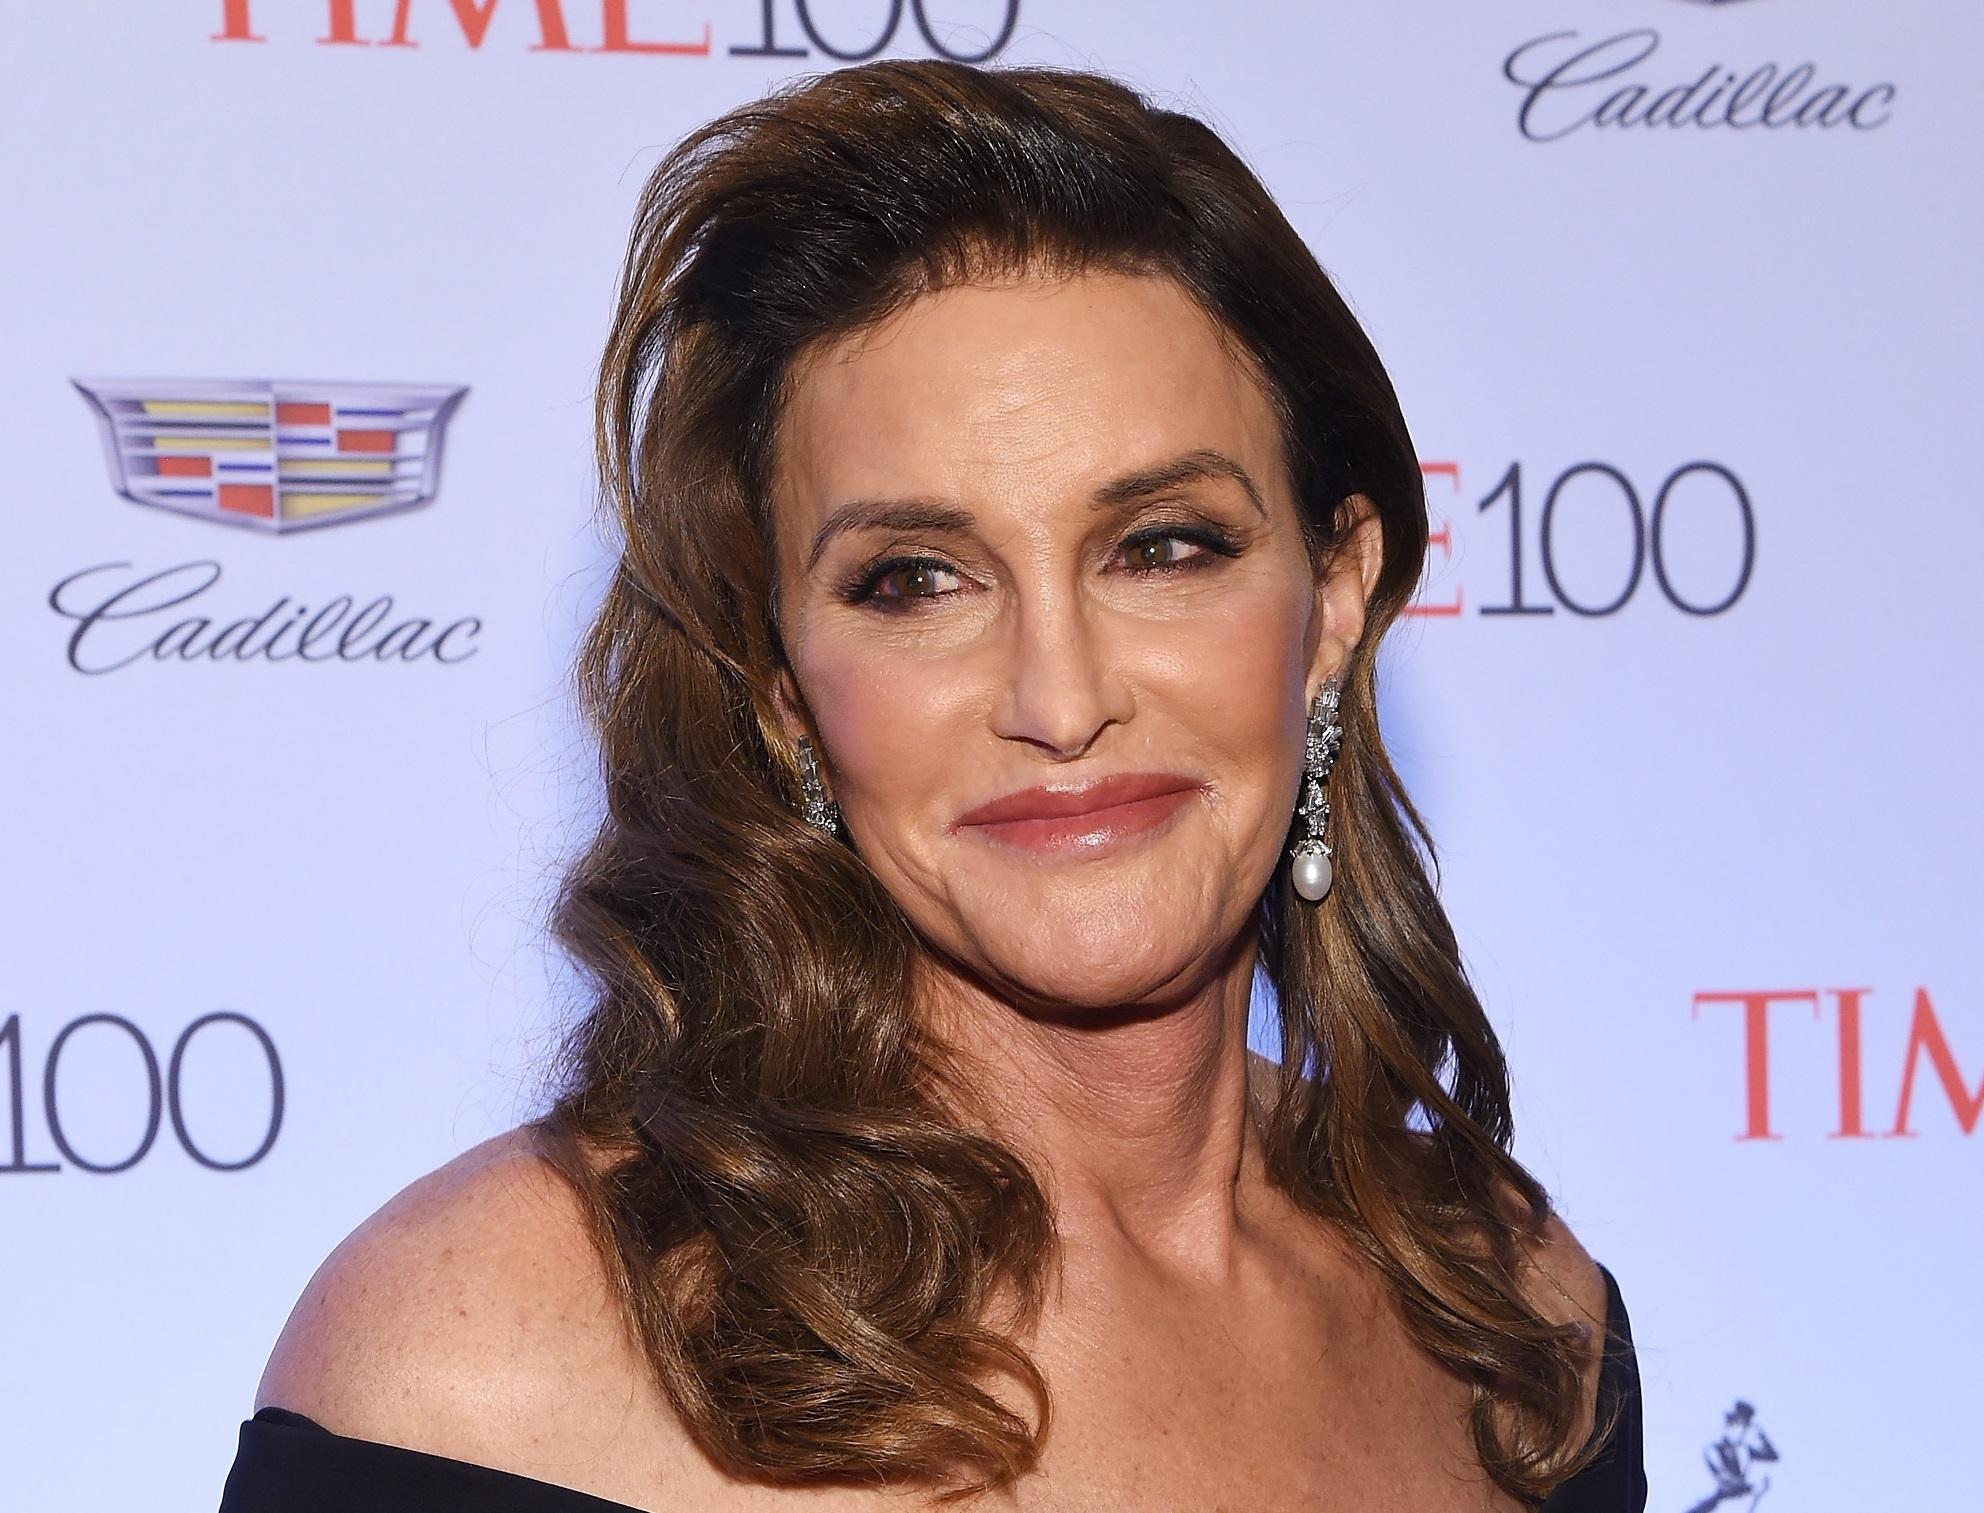 Caitlyn Jenner back to Bruce